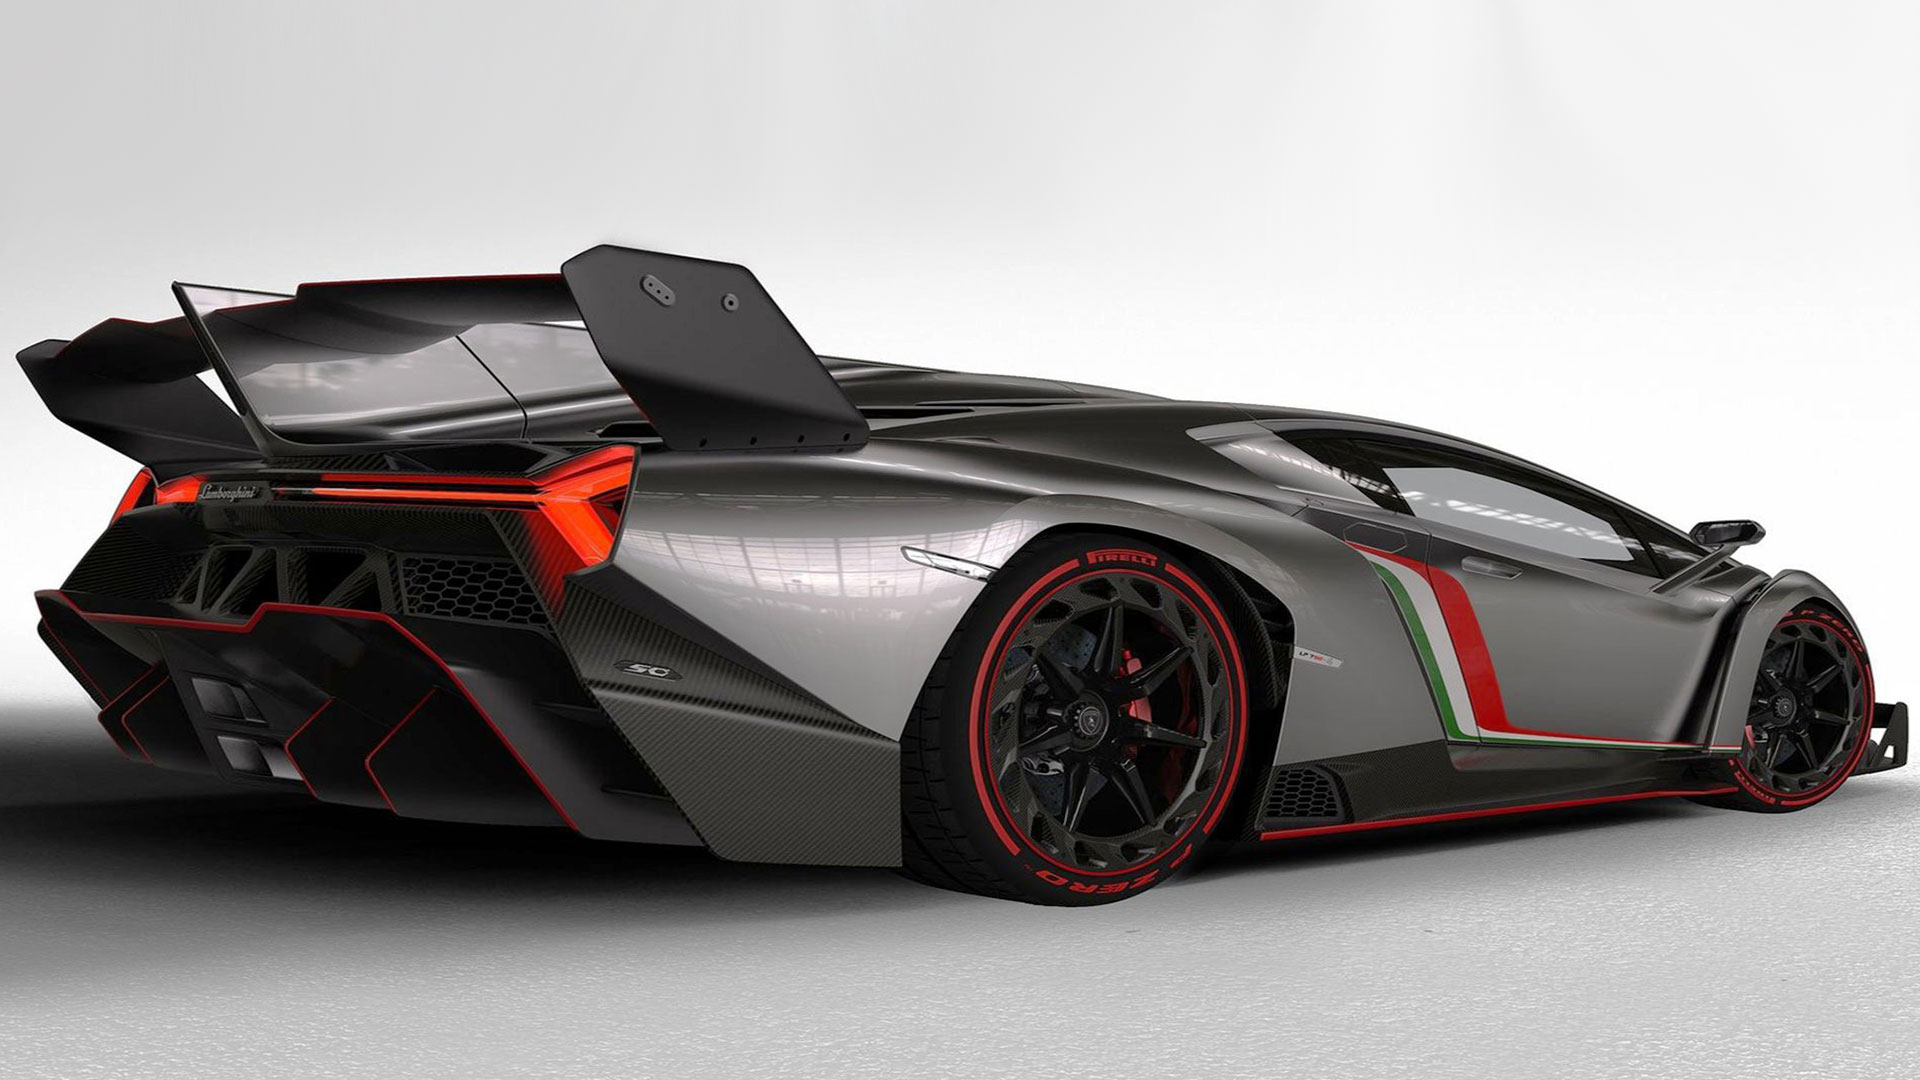 2013 Lamborghini Veneno-HD Wallpapers